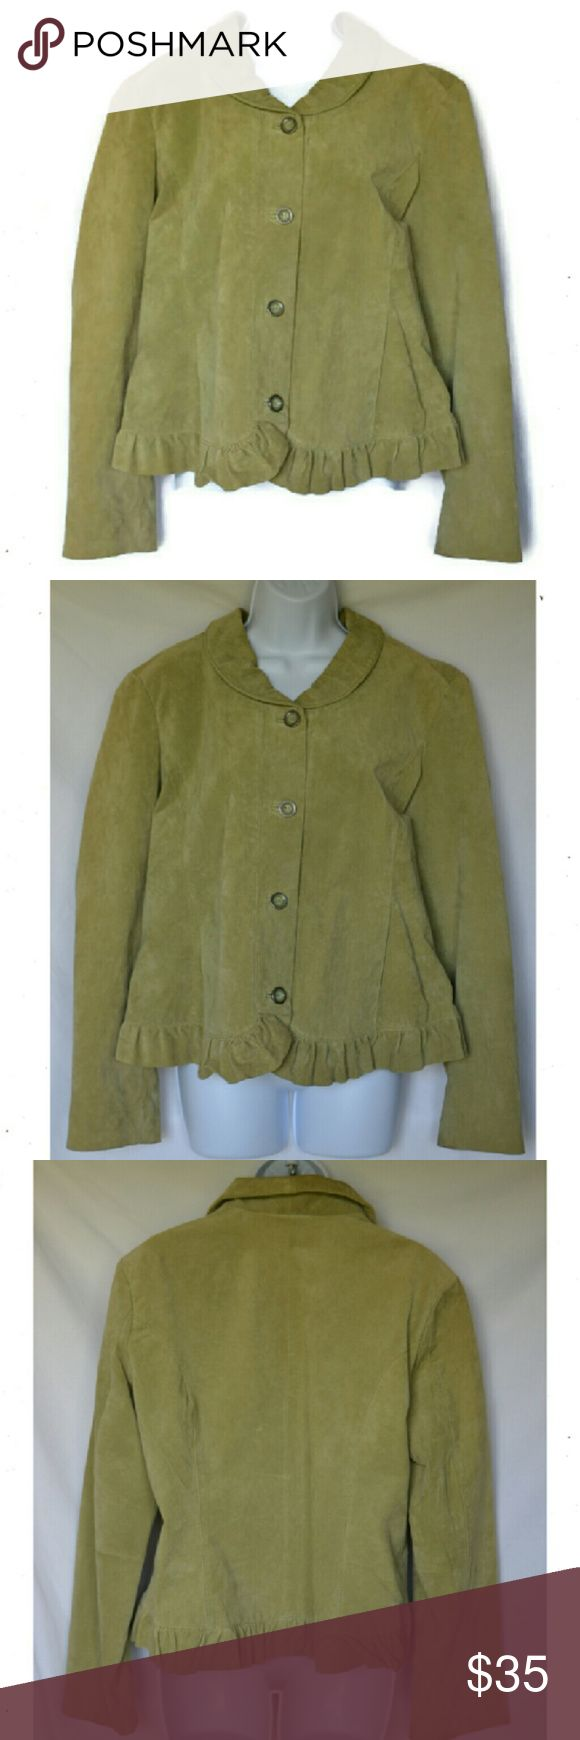 "Christopher & Banks Suede Jacket Christopher & Banks Suede Celadon Green  Jacket, size XL. Ruffled trim, lined and  two front slip pockets. L 22"" B40"" W 38"" - 40"". EUC (22) Christopher & Banks Jackets & Coats Blazers"